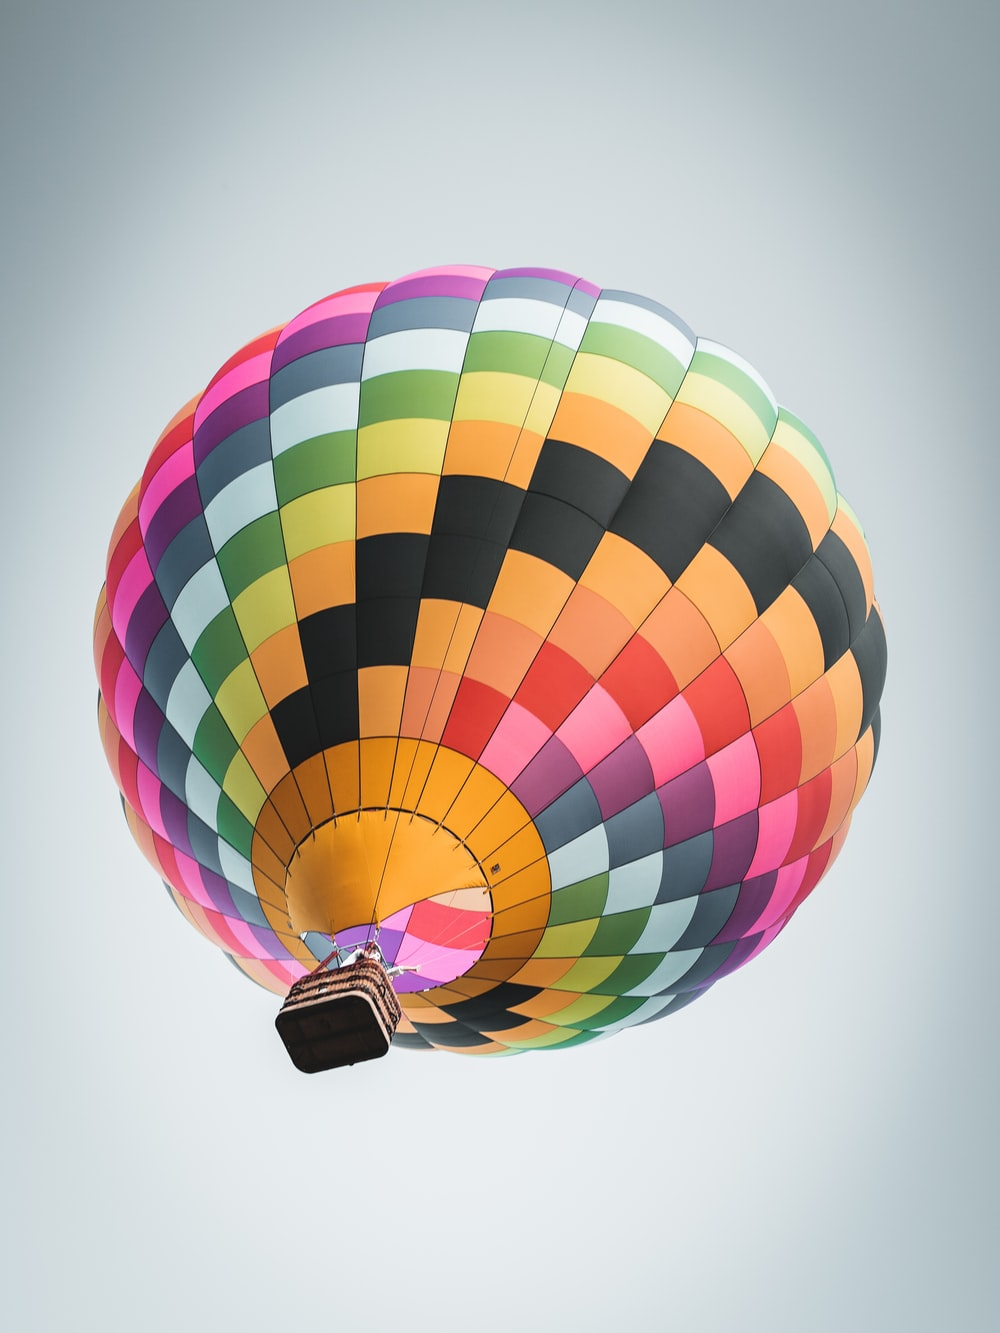 multicolored hot air balloon low-angle photography